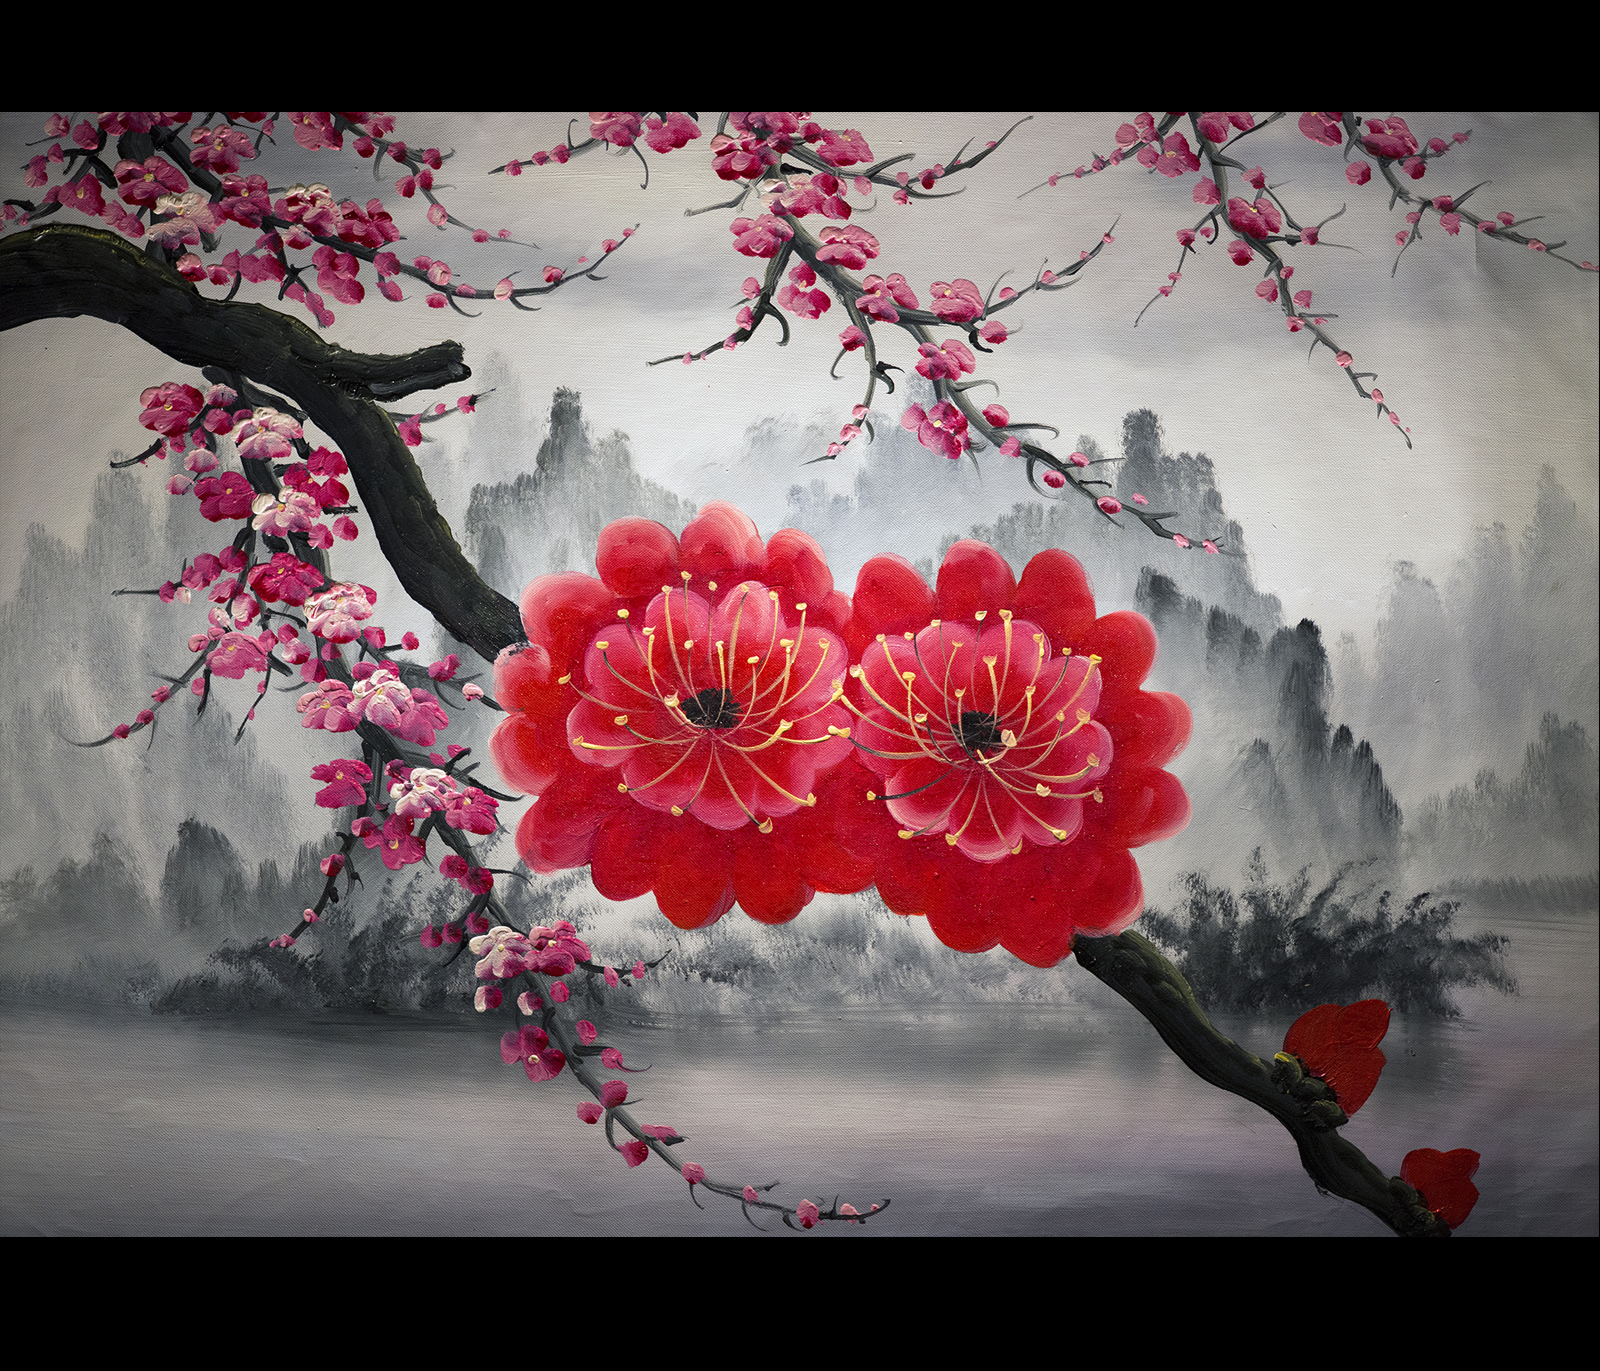 Abstract Art Painting Cherry Blossom Painting Feng Shui Painting